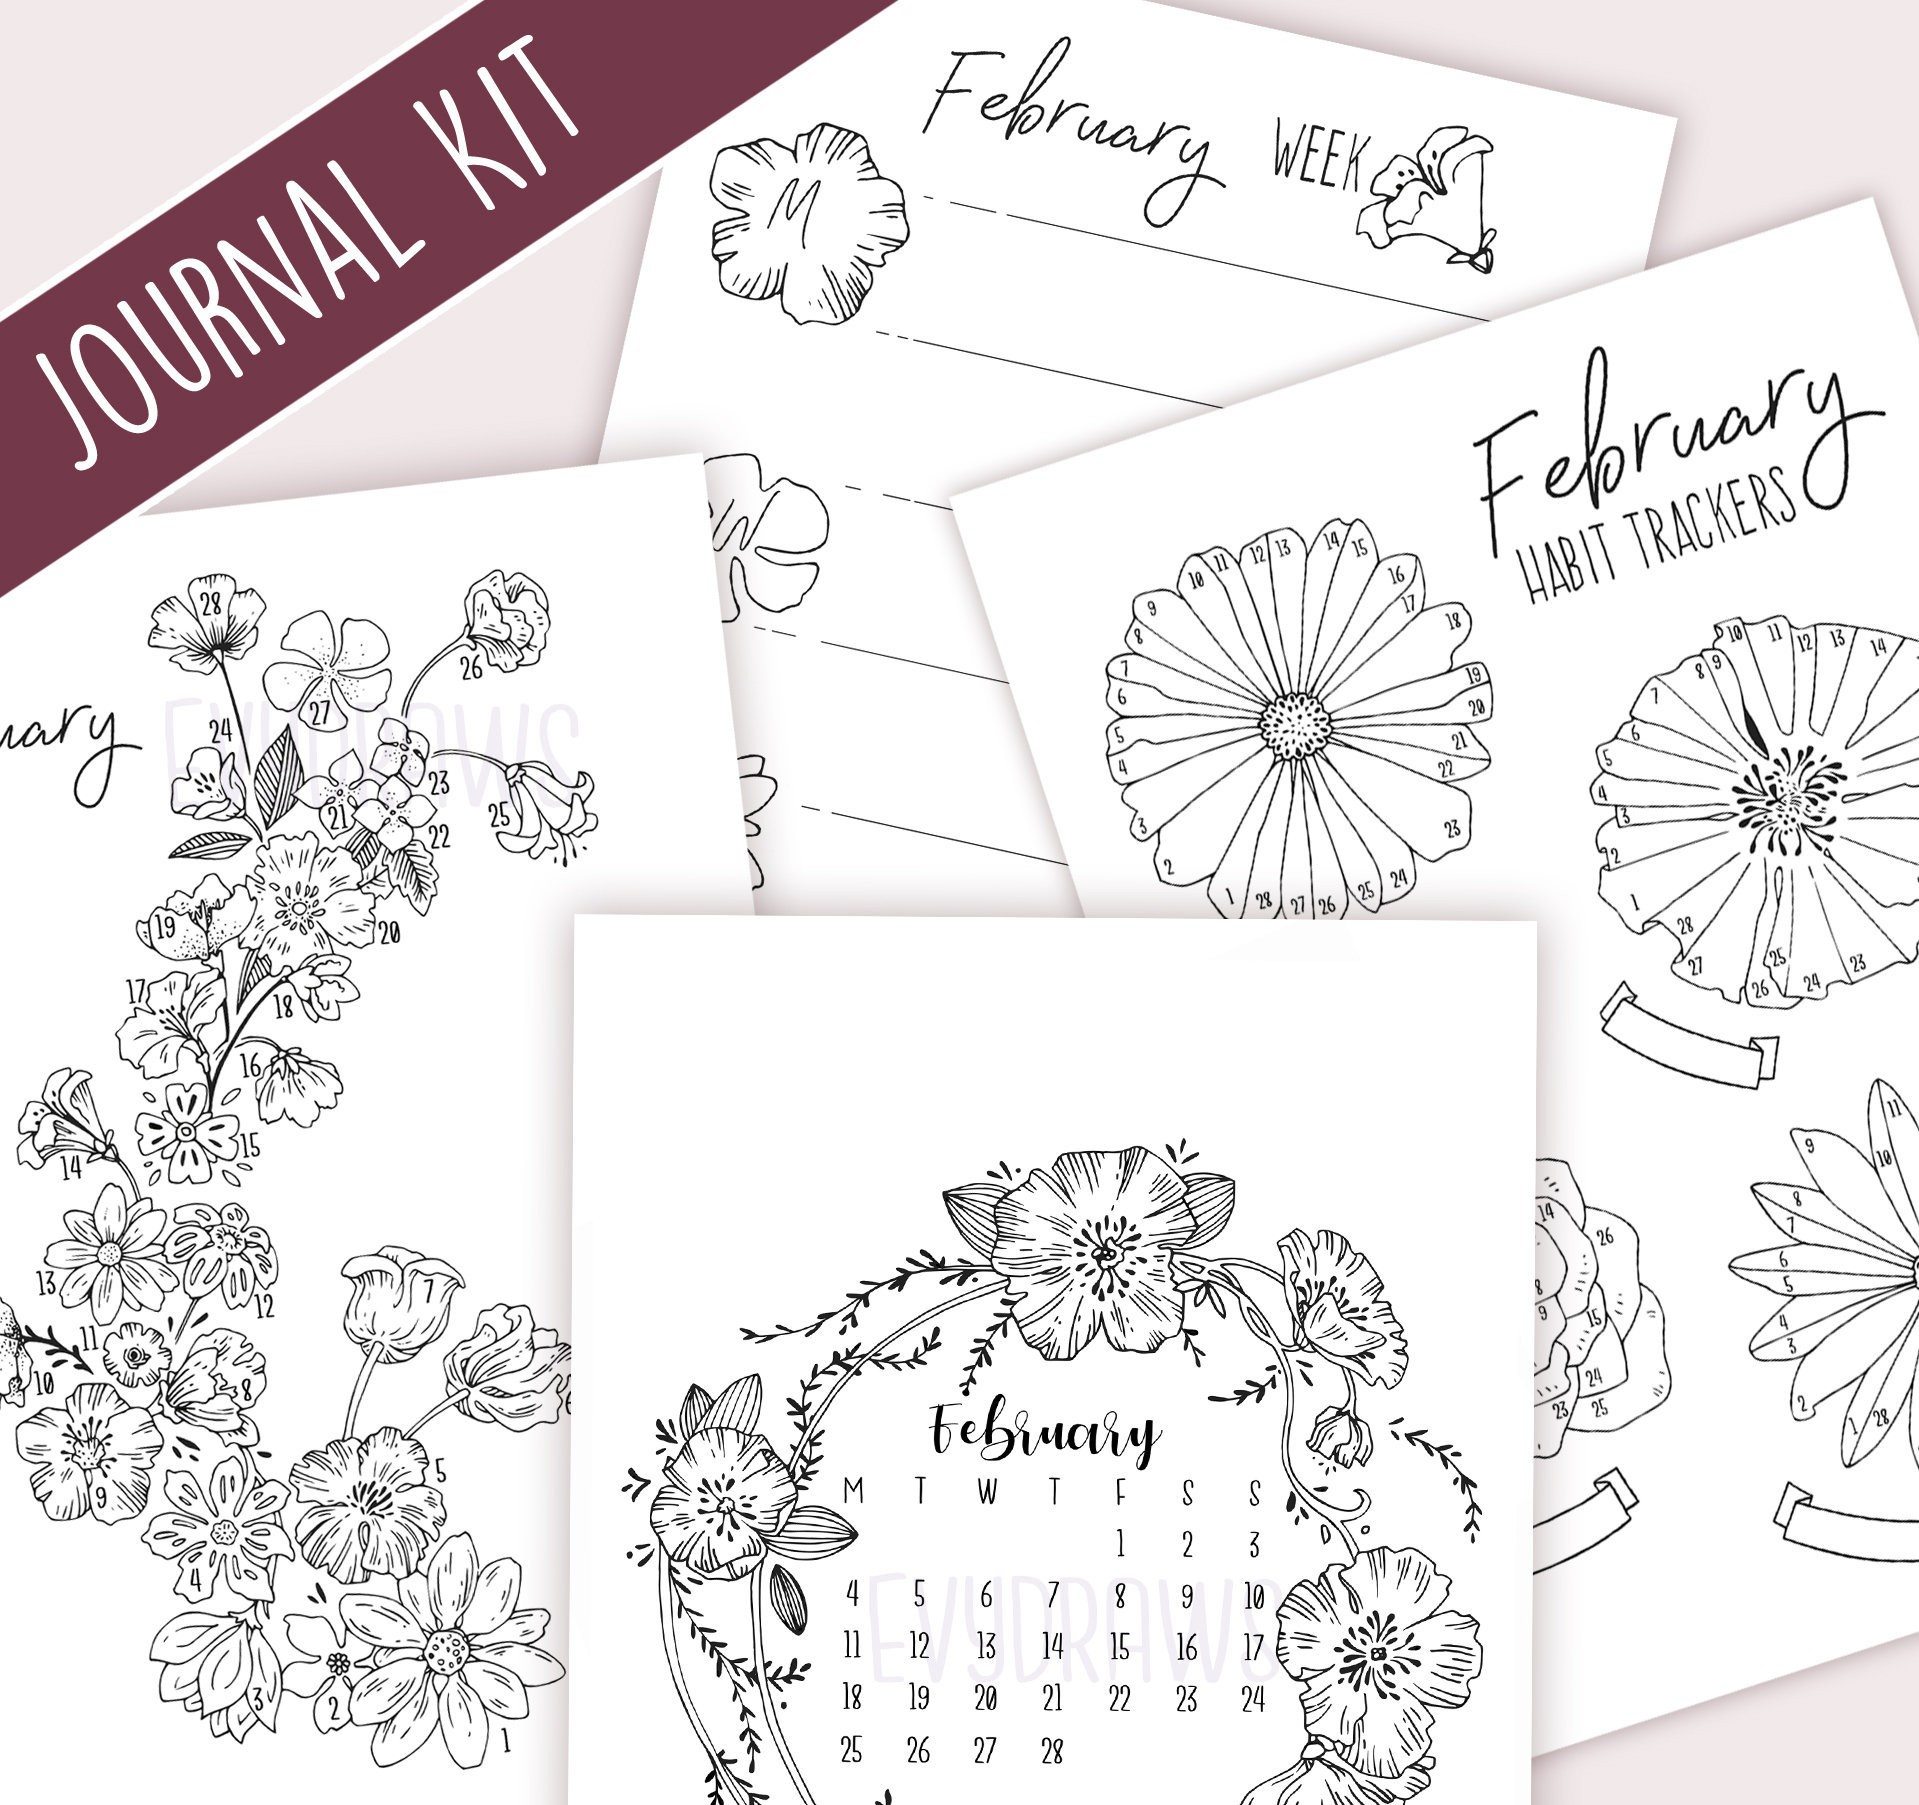 2019 March Calendar Sri Lanka Más Recientes February 2019 Bullet Journal Kit Printable Monthly Bundle Of 2019 March Calendar Sri Lanka Más Reciente Julian Calendar 2019 Quadax July 2018 Calendar Sri Lanka – Calendar